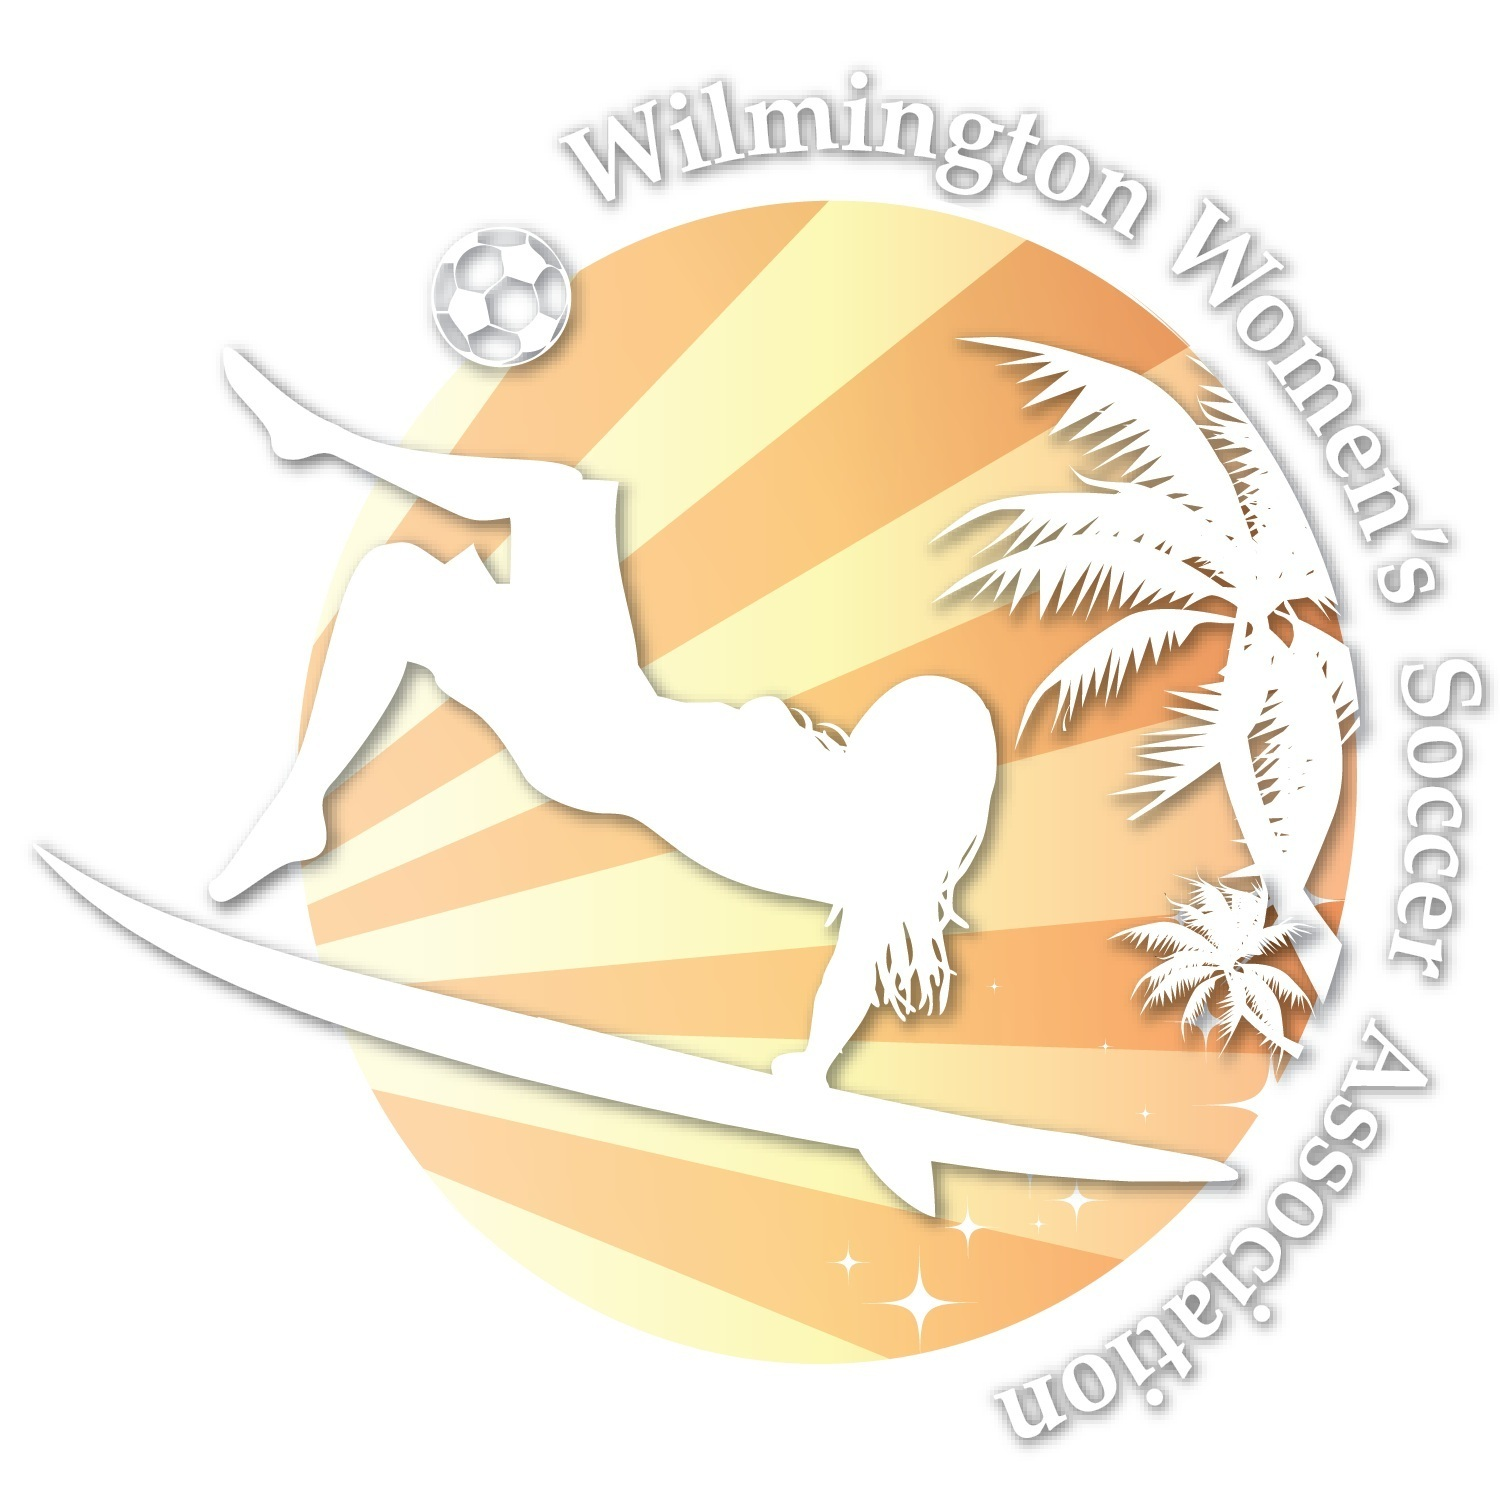 Wilmington Women's Soccer Association